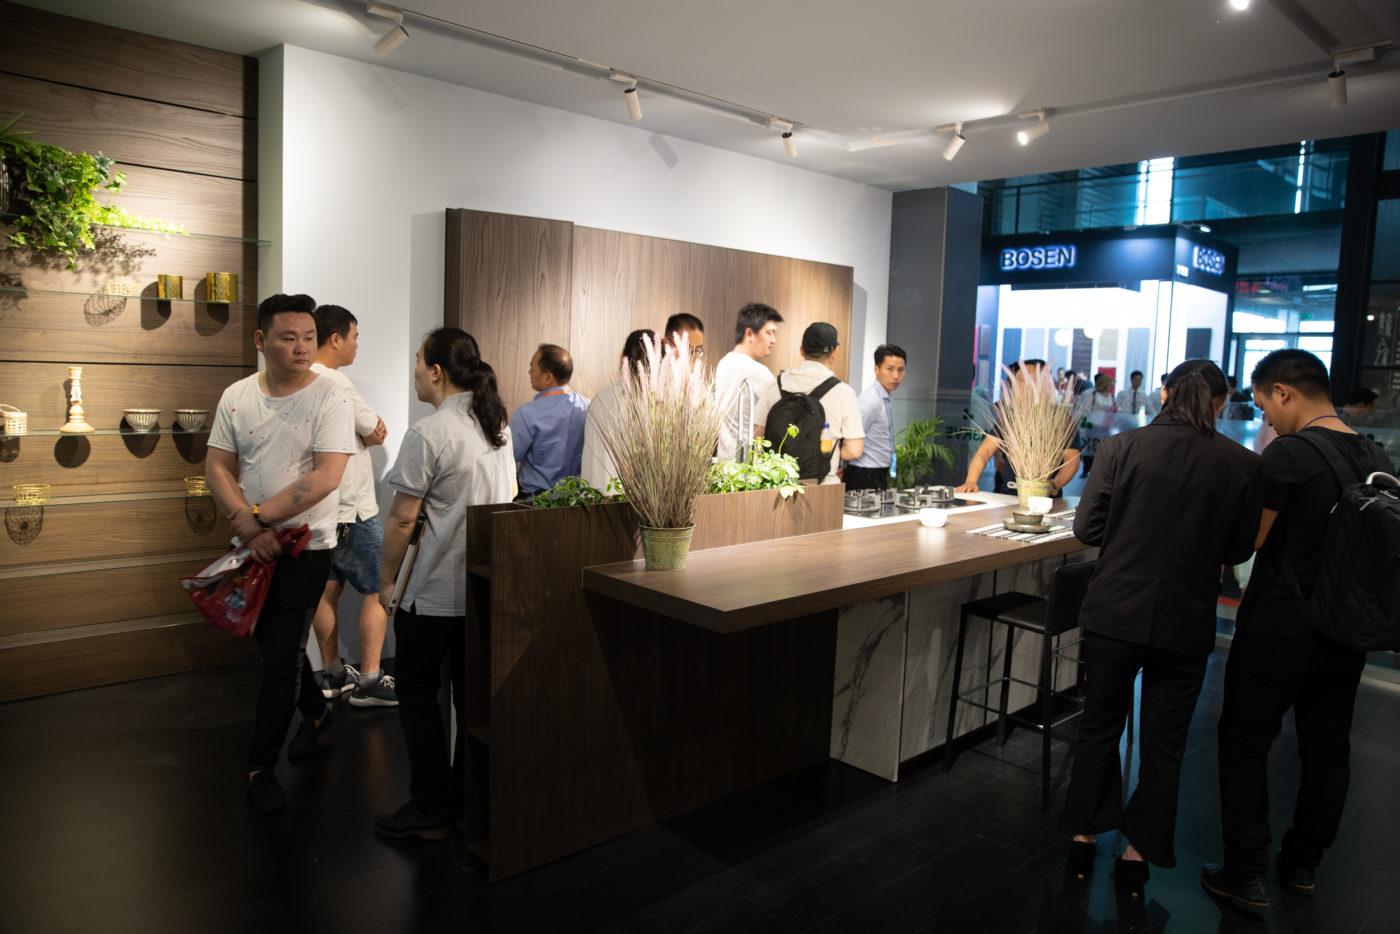 Grande successo per Arredo3 al Kitchen & Bath 2019 China - 3